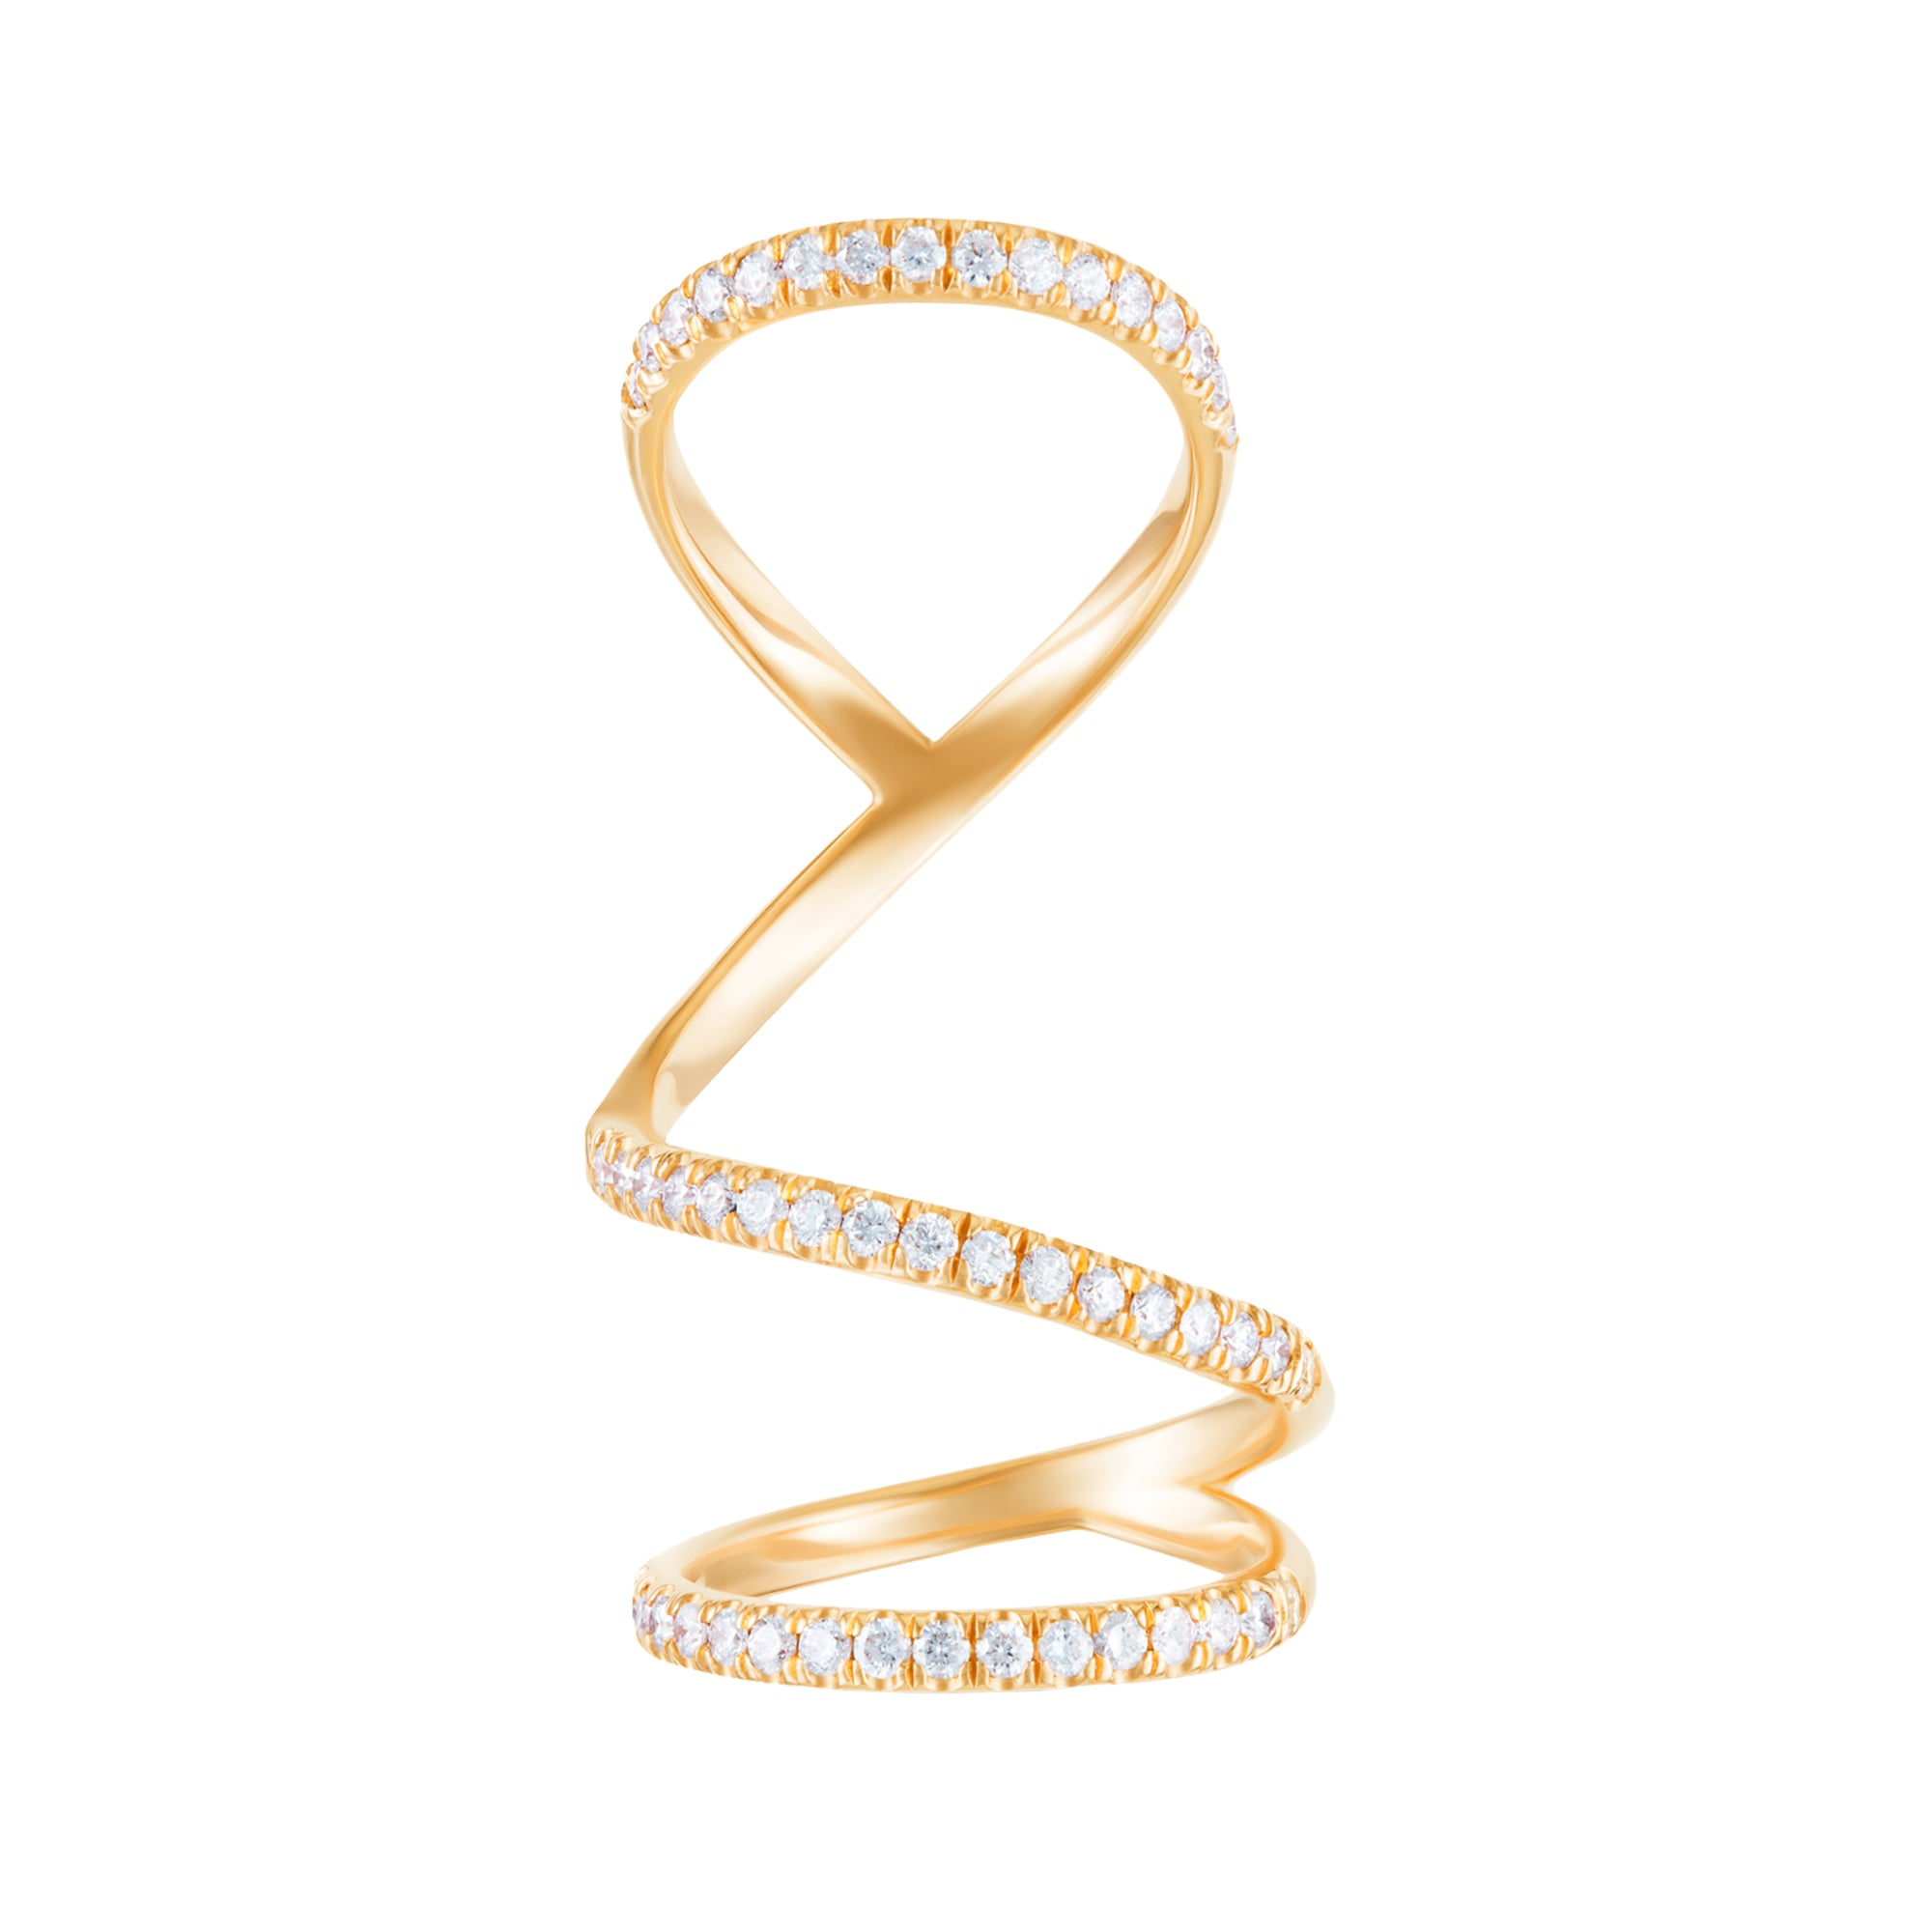 Gold & White Diamond Arabesque Ring by Carbon & Hyde for Broken English Jewelry